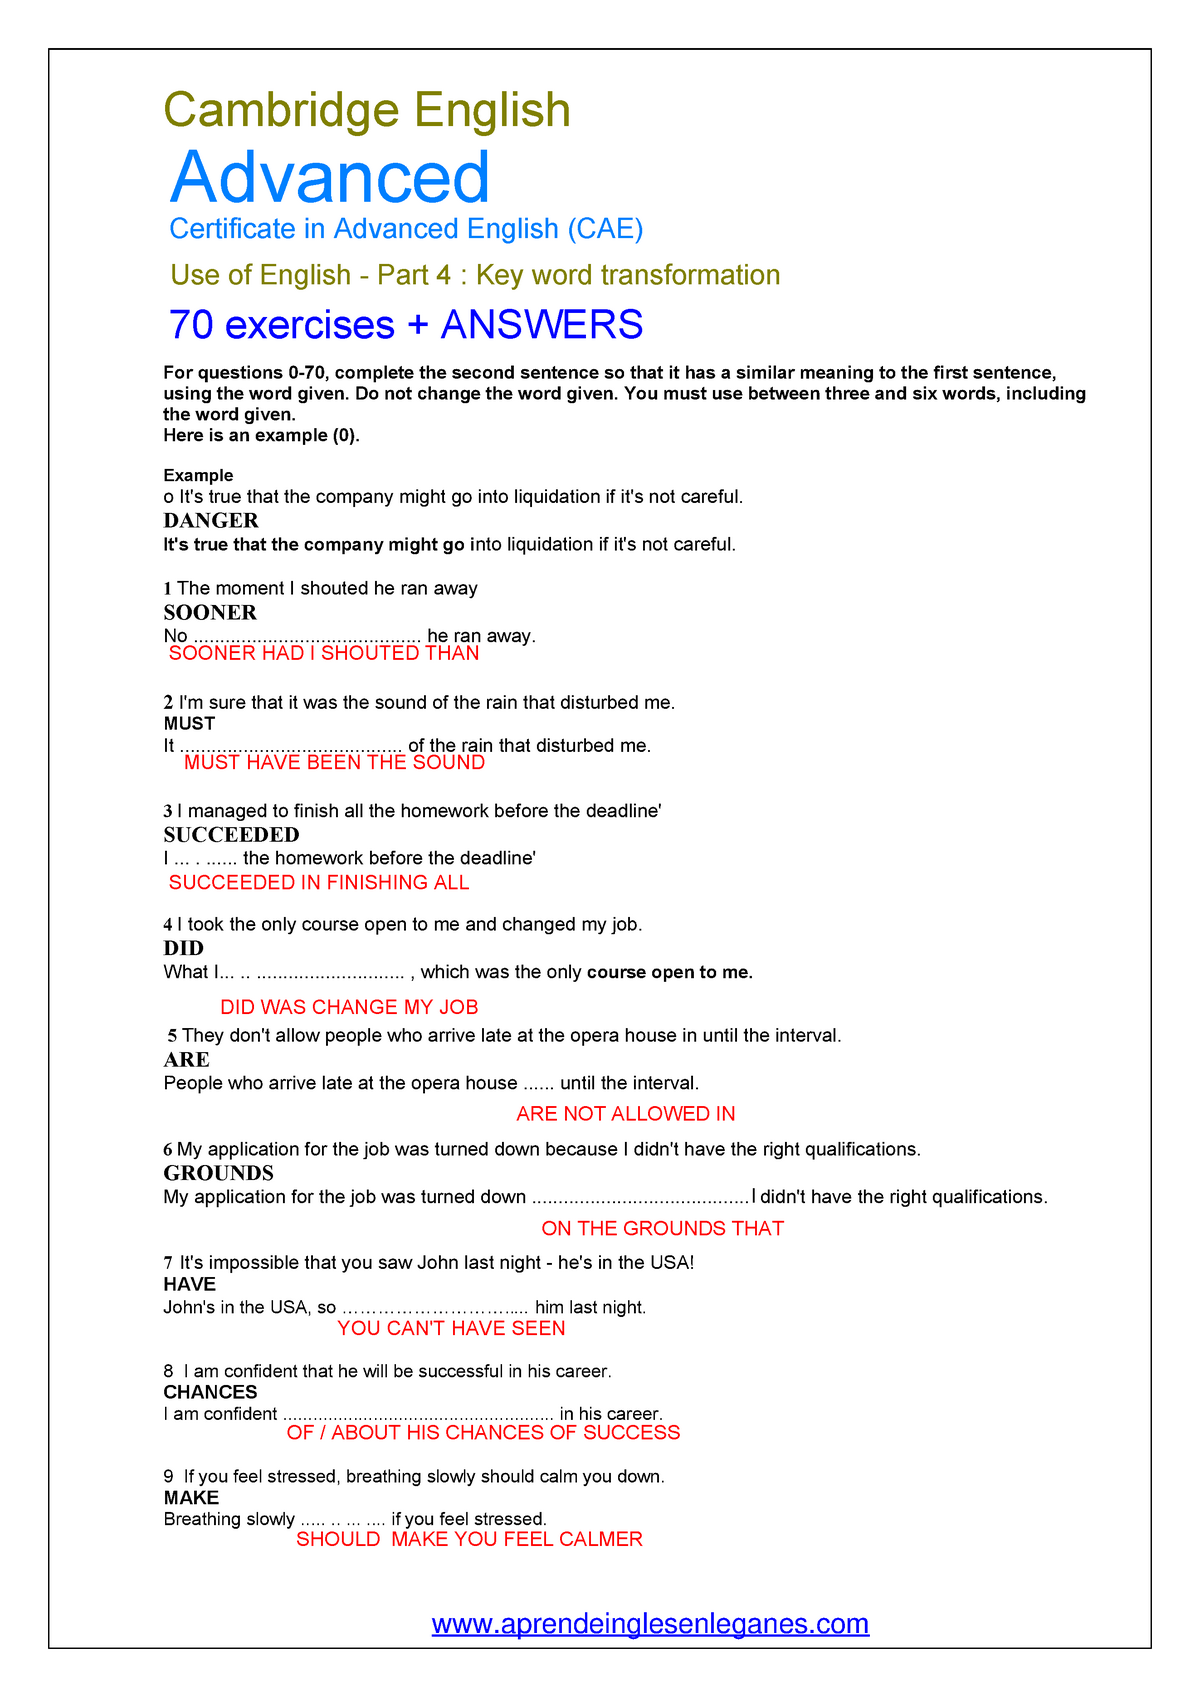 70 CAE KEY WORD Transformations + Answers - Lingua Inglese